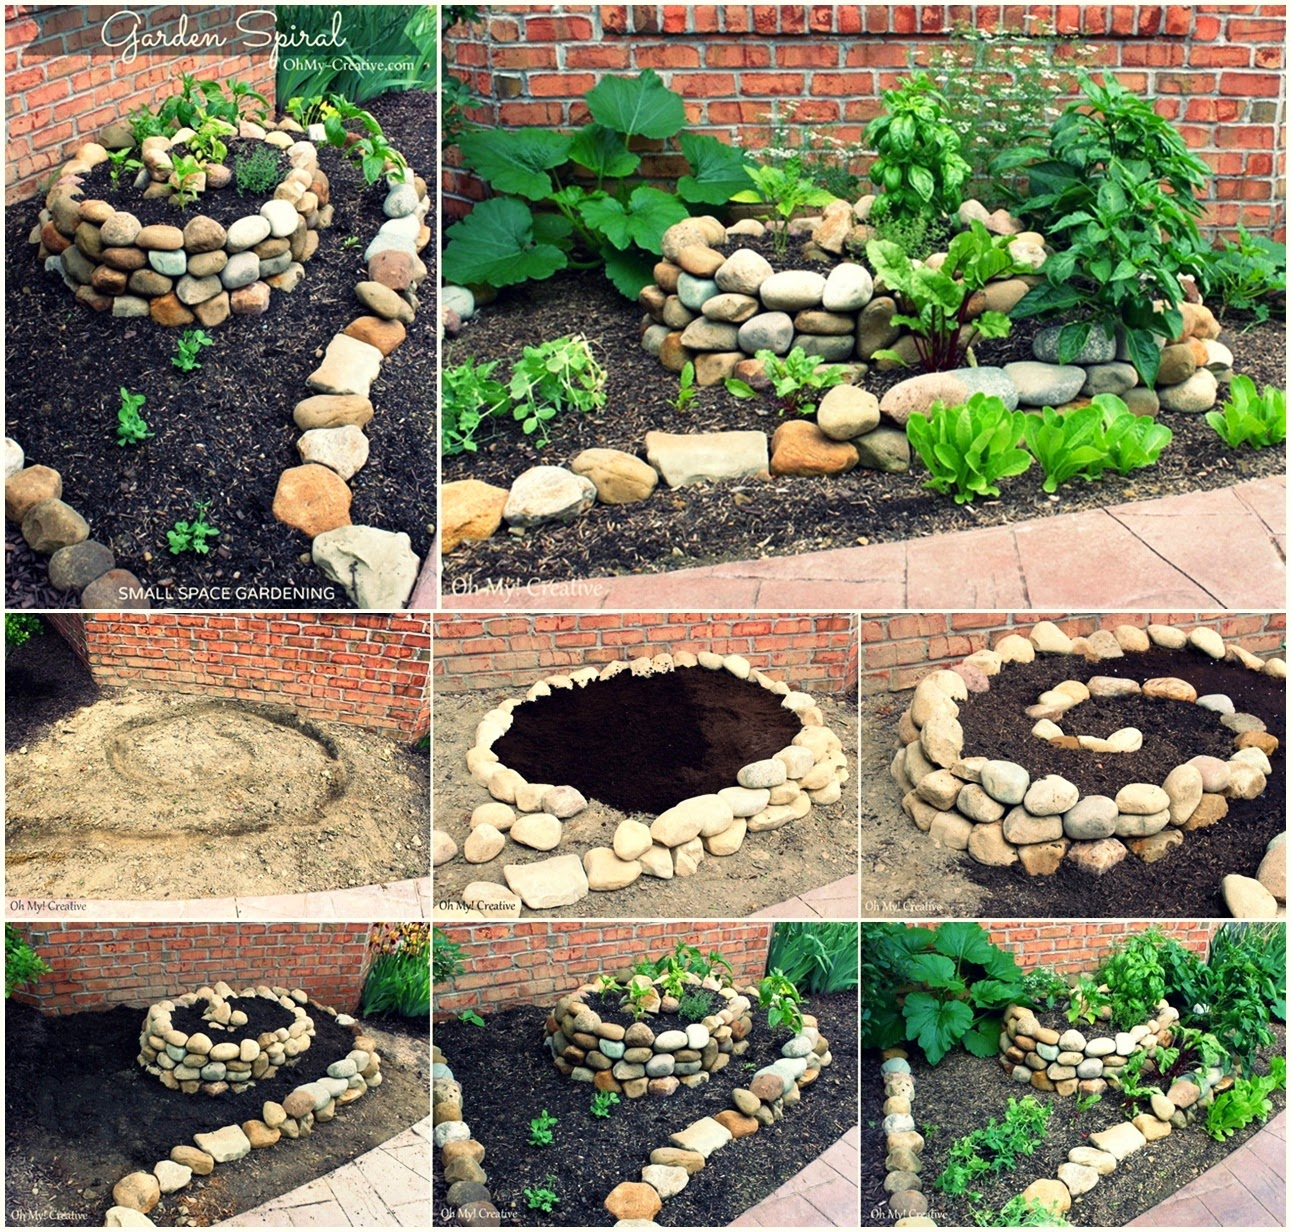 Diy create a small vegetable garden using a garden spiral for Creating a vegetable garden